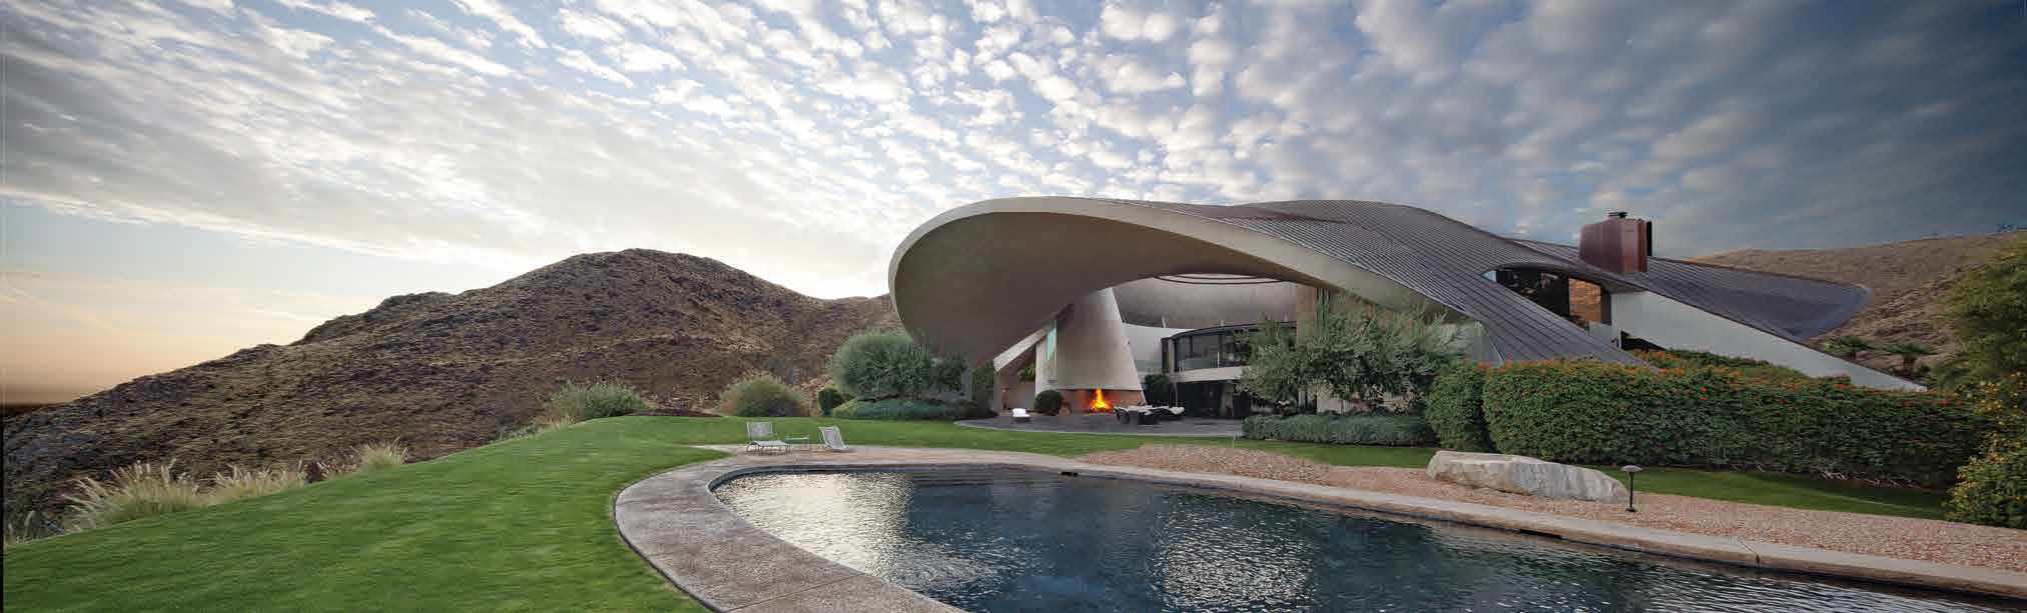 Hollywood Modern, Bob Hope House